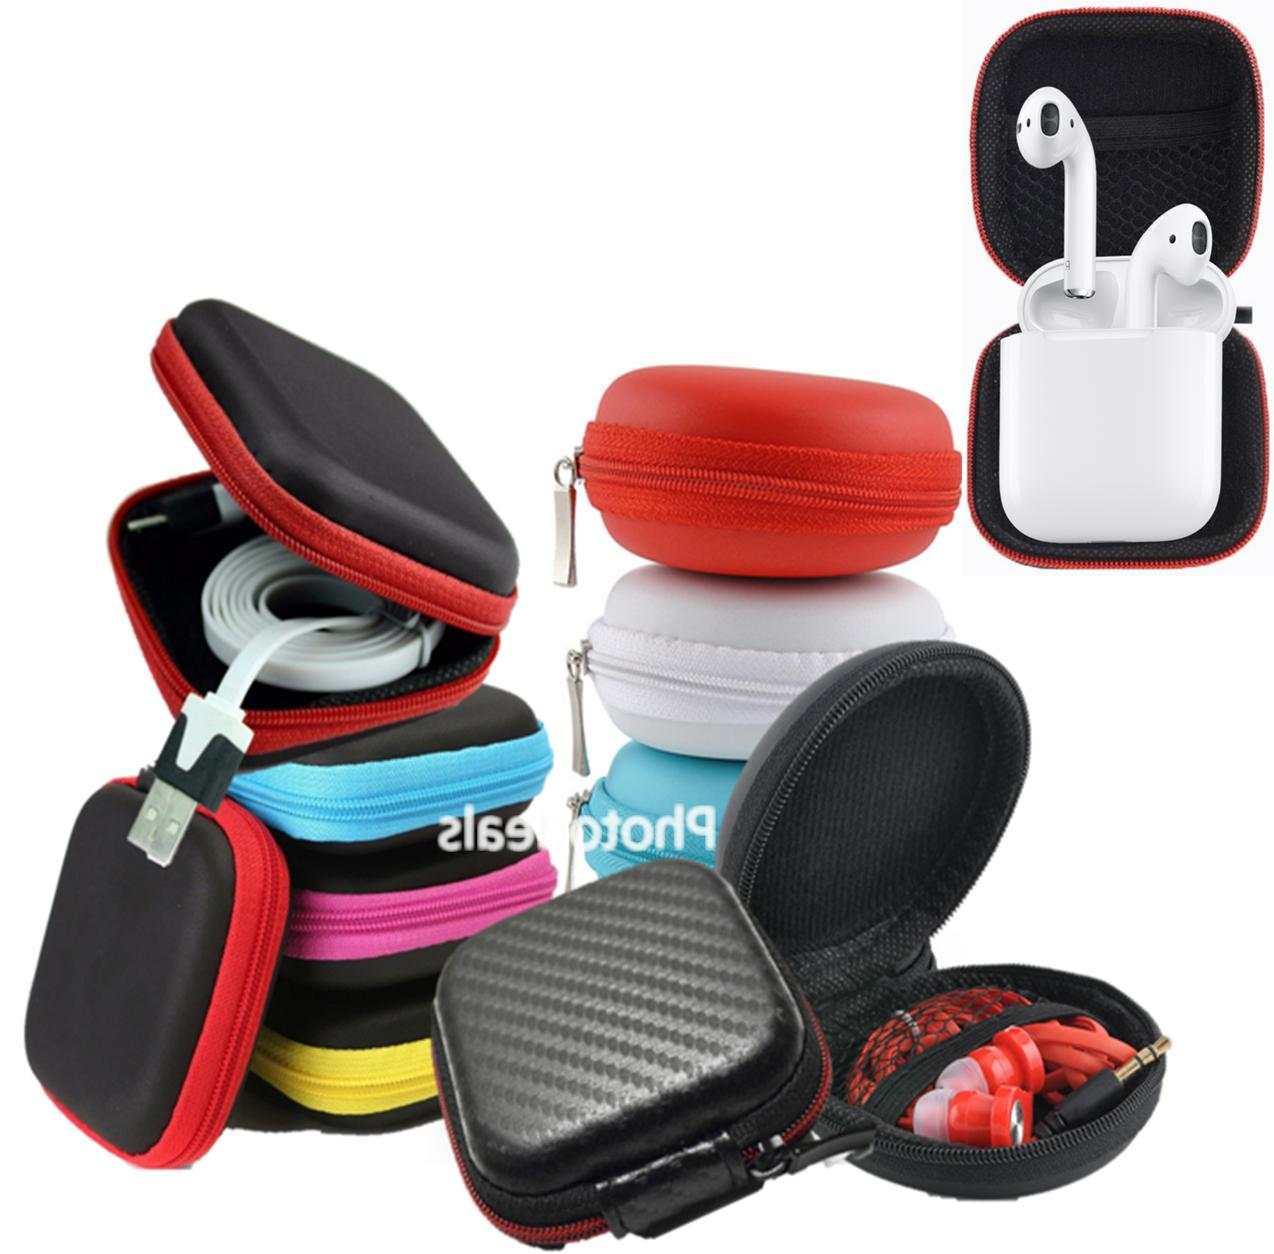 hard earphones earbuds airpods carrying storage case